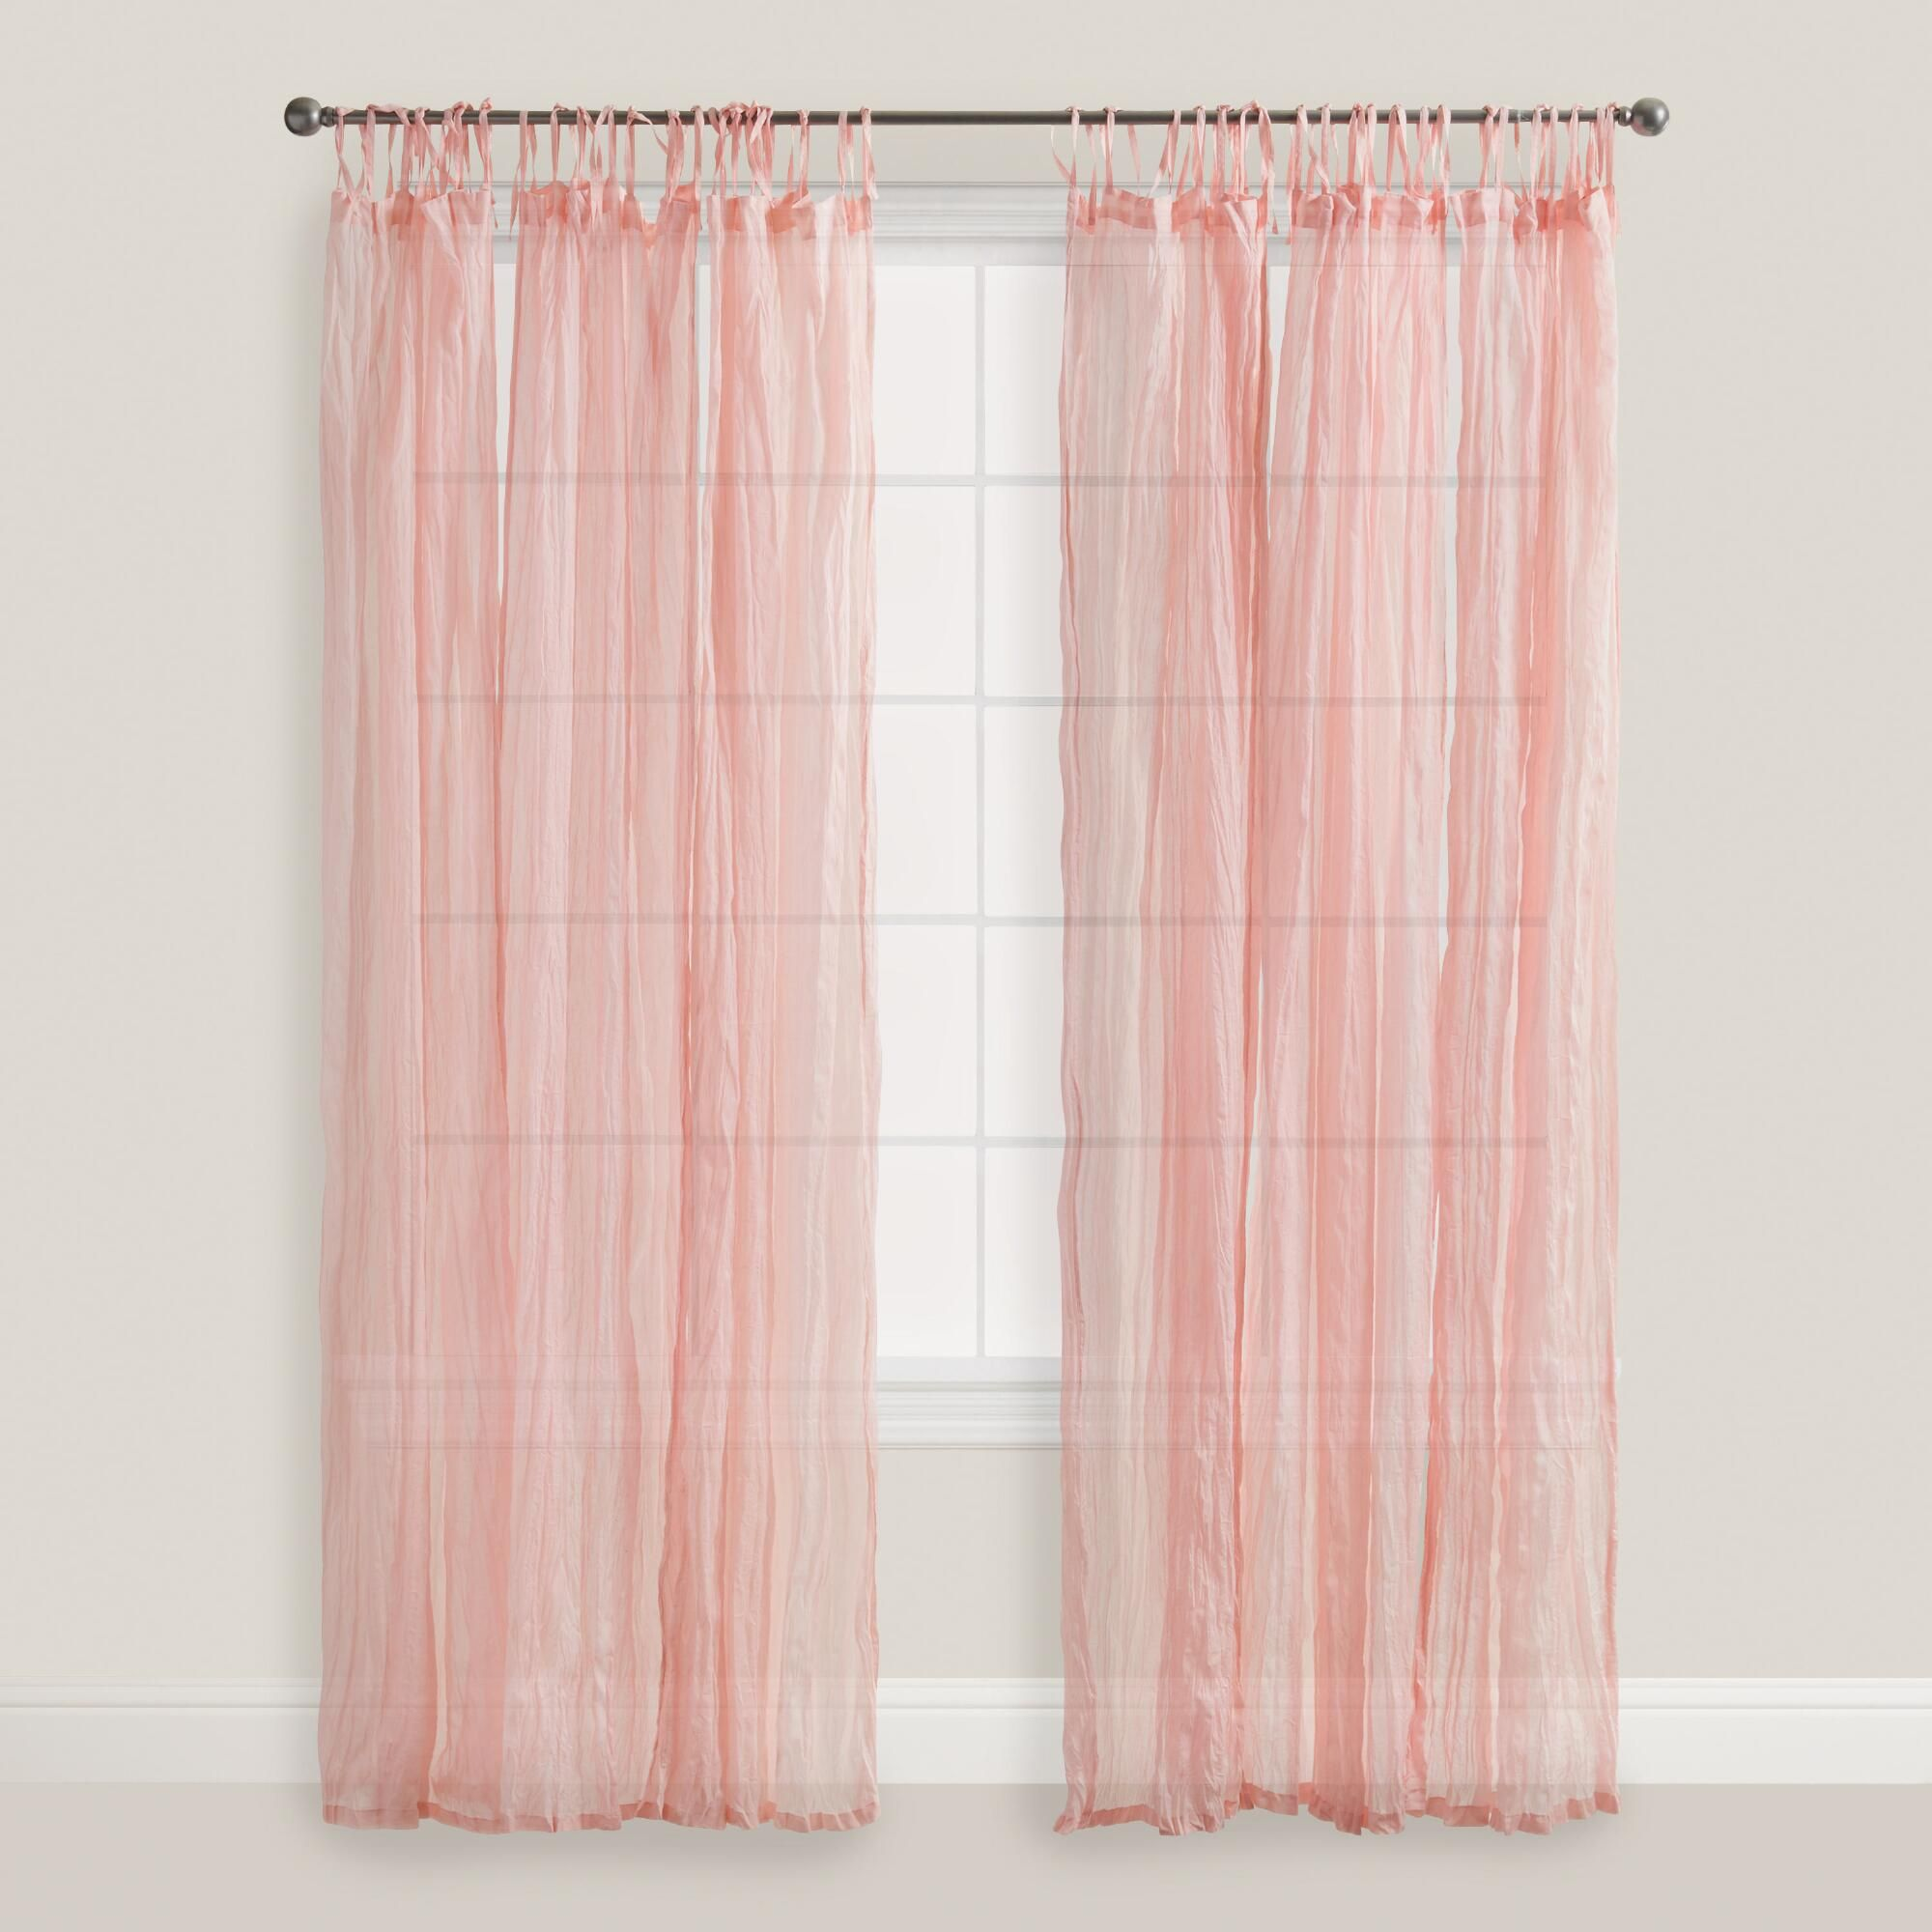 Crafted Of Cotton Voile In A Pink Hue Our Exclusive Tie Top Curtains Filter Light While Providing Privacy And Adding Crinkle Texture